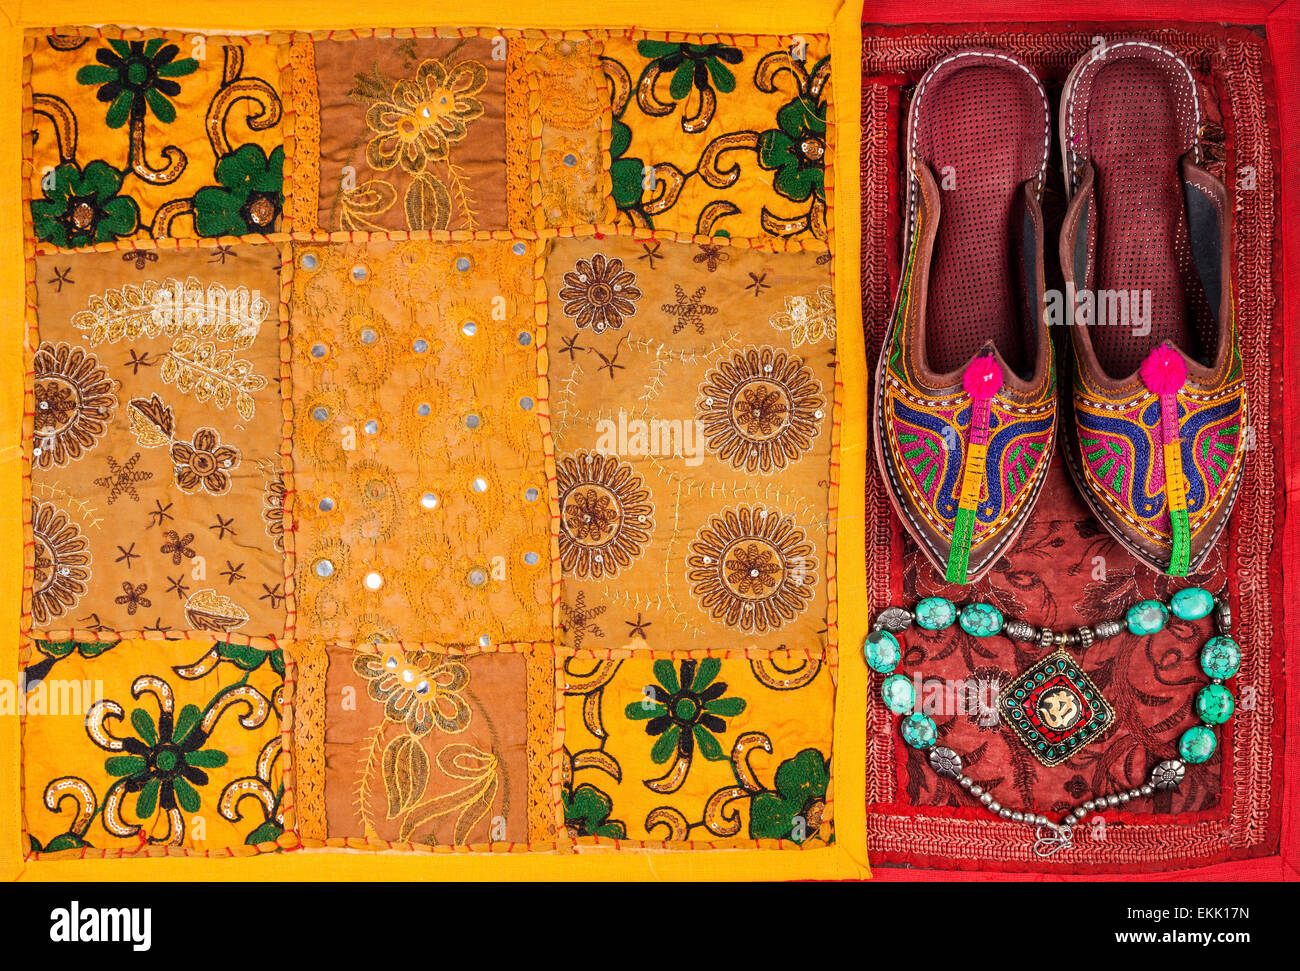 Colorful ethnic shoes, necklace and yellow Rajasthan cushion cover on flea market in India - Stock Image